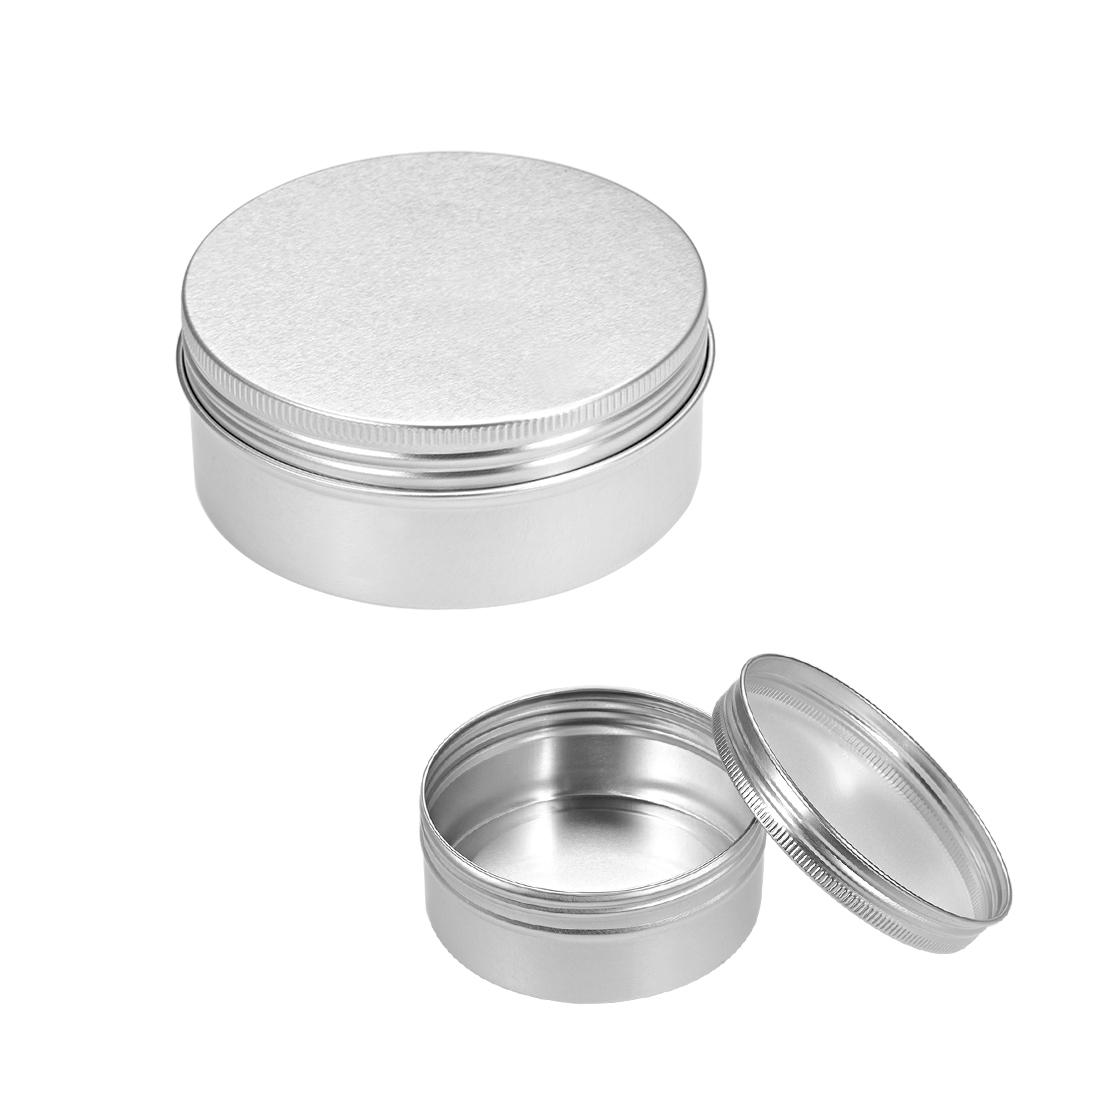 8.3 oz Round Aluminum Cans Tin Can Screw Top Metal Lid Containers, 250ml, 5pcs